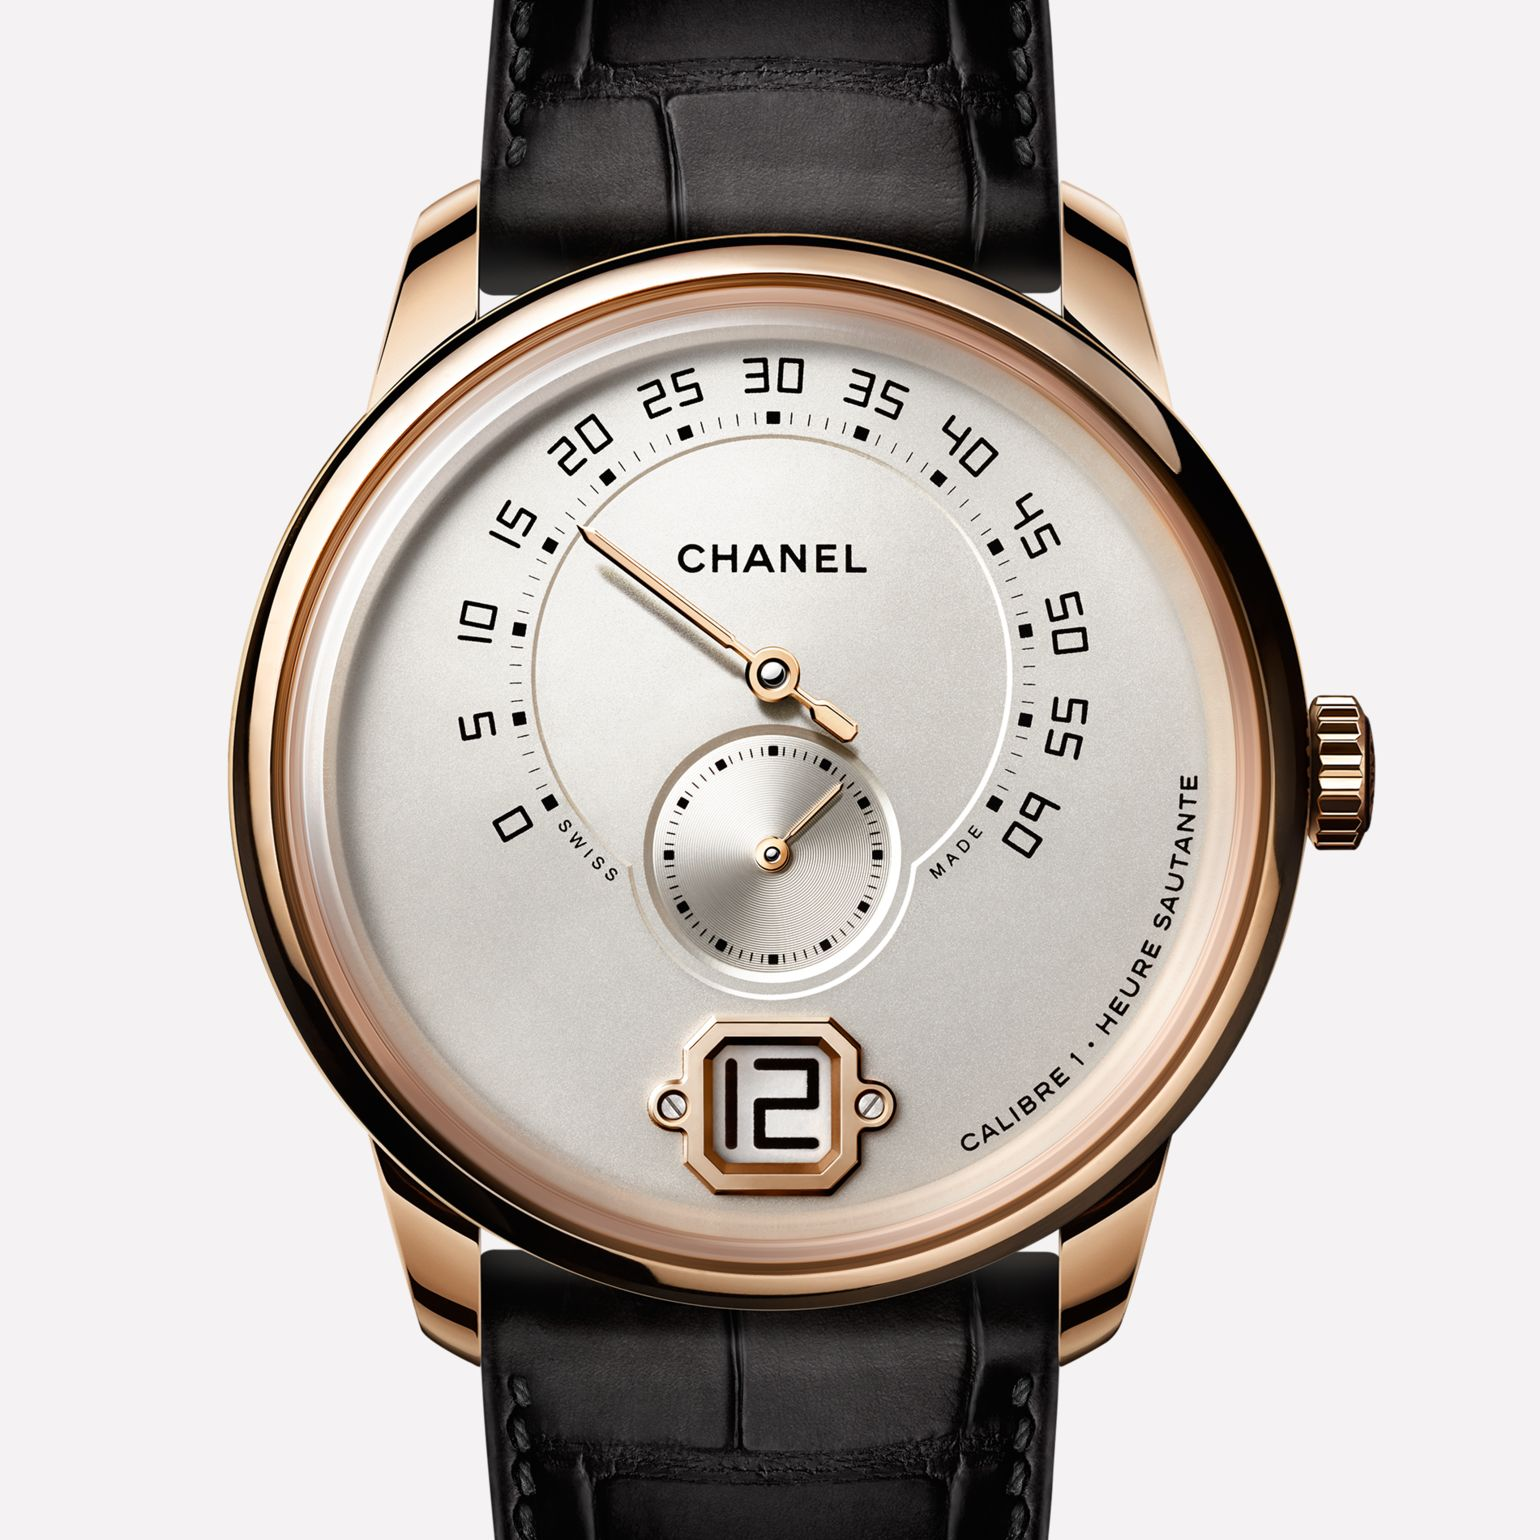 Monsieur Watch BEIGE GOLD, ivory dial with jumping hour, retrograde minute indication at 240° and small second counter